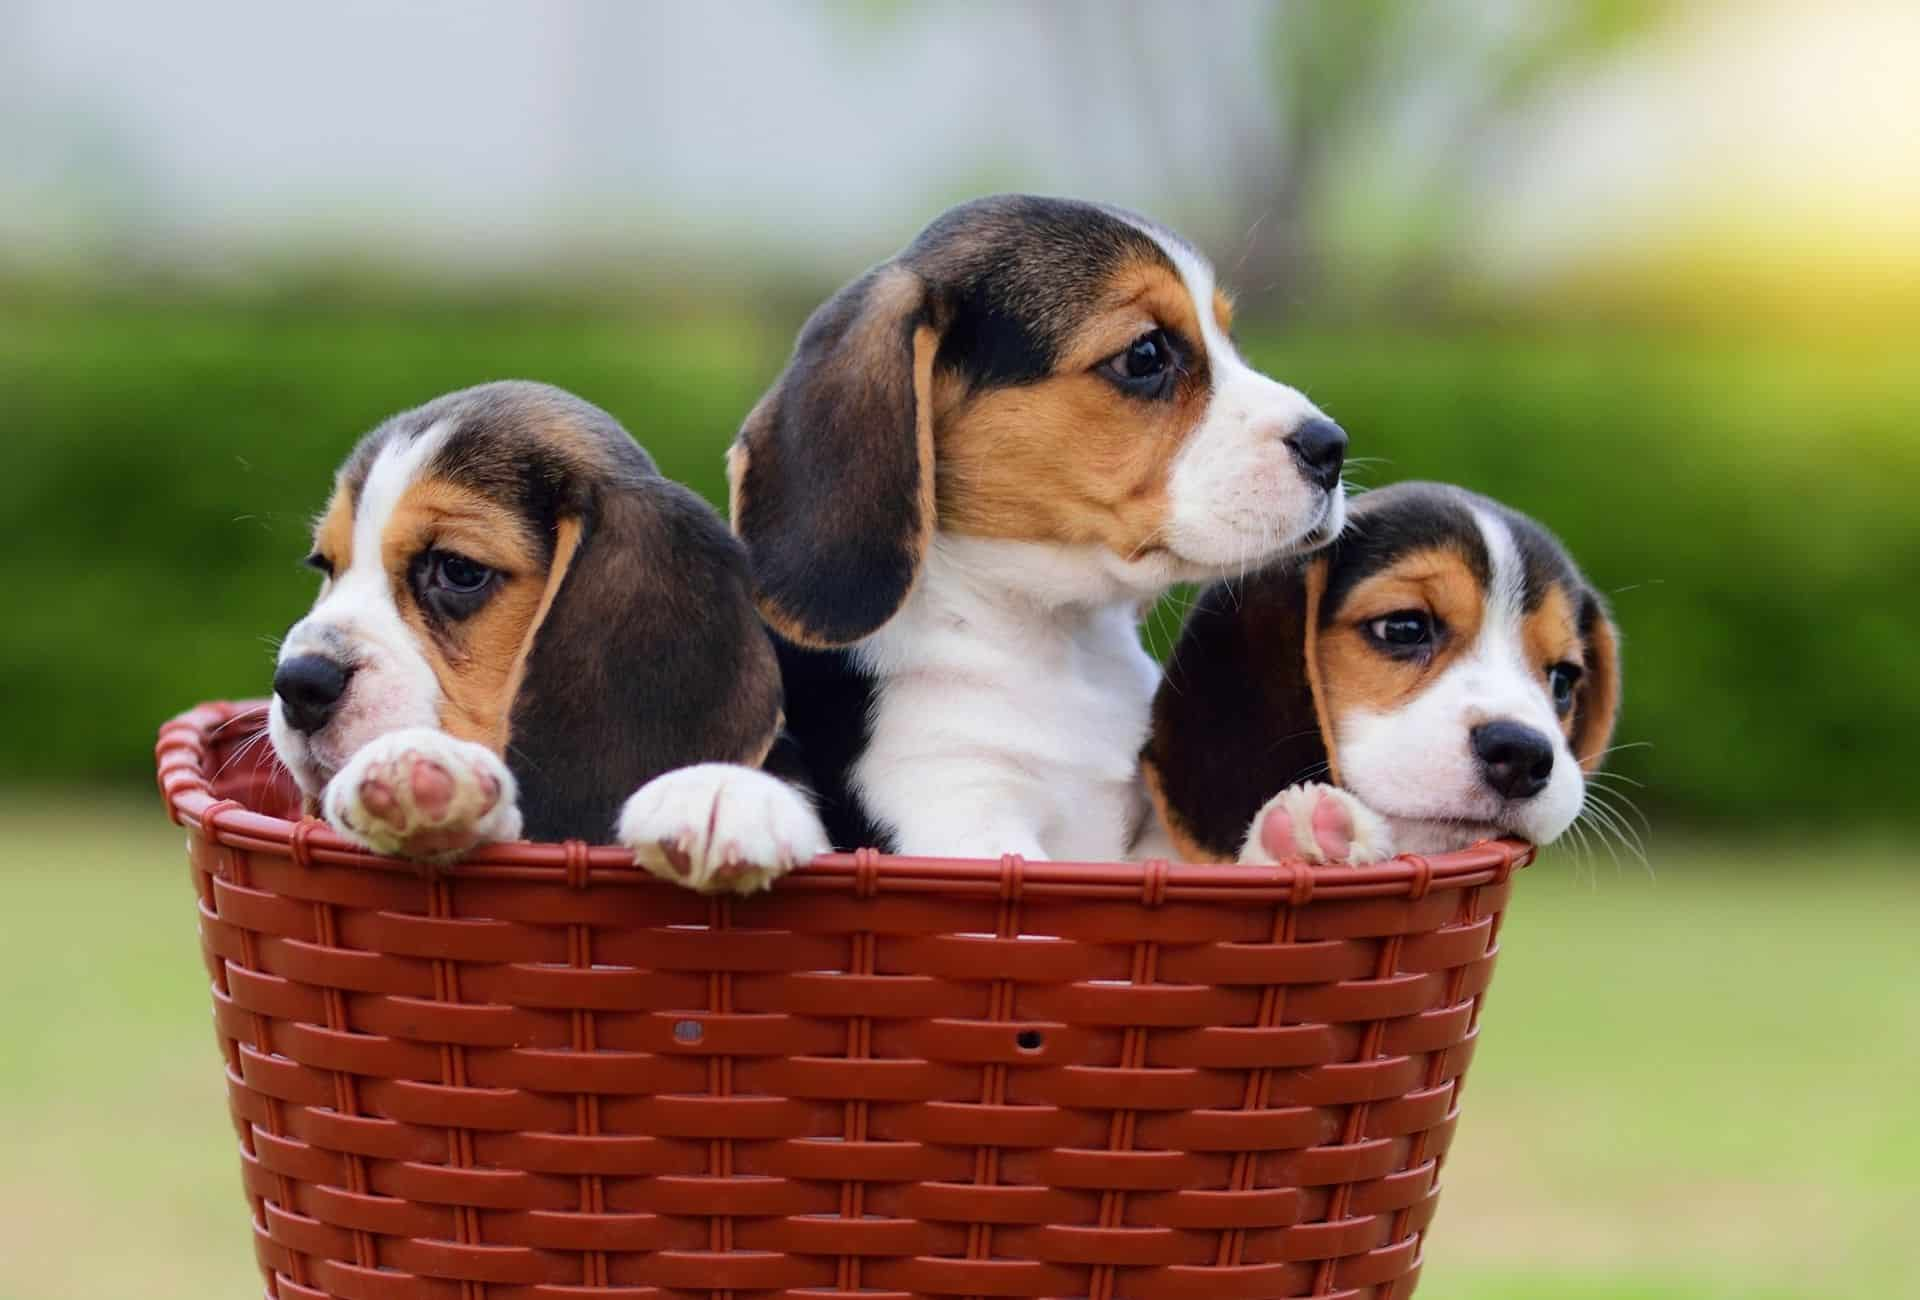 Three Beagle puppies sit in a basket.